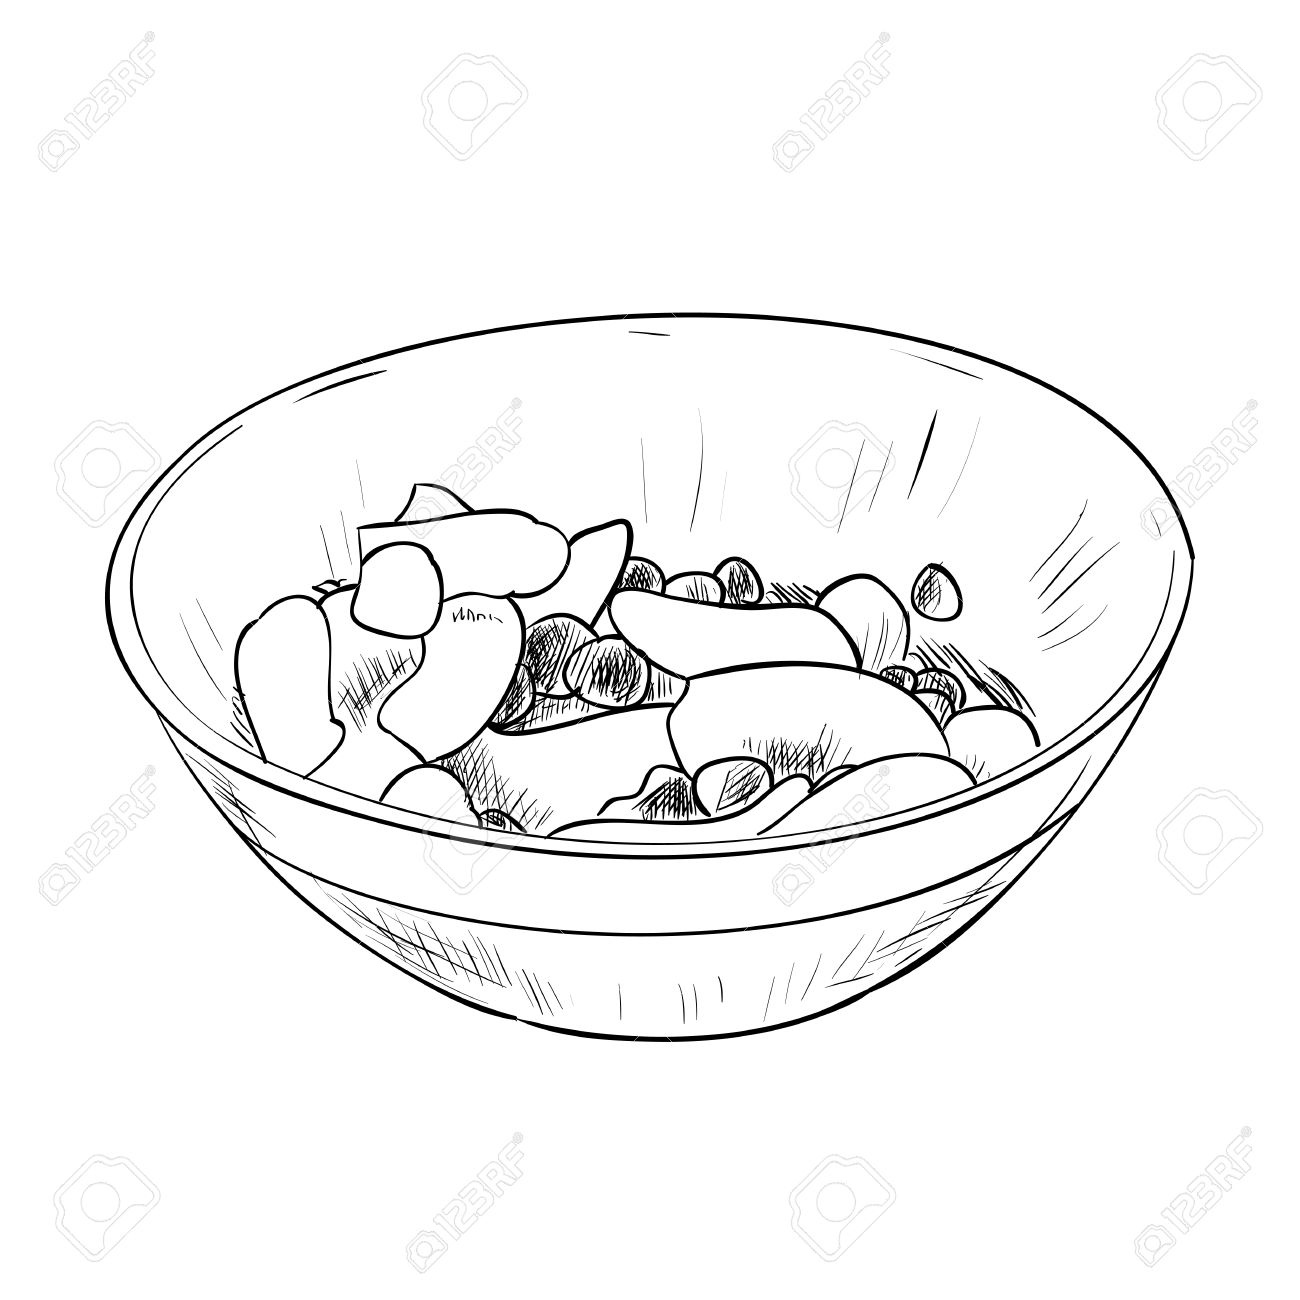 1300x1300 Vector Sketch Of Dish With Food. Hand Draw Illustration. Royalty